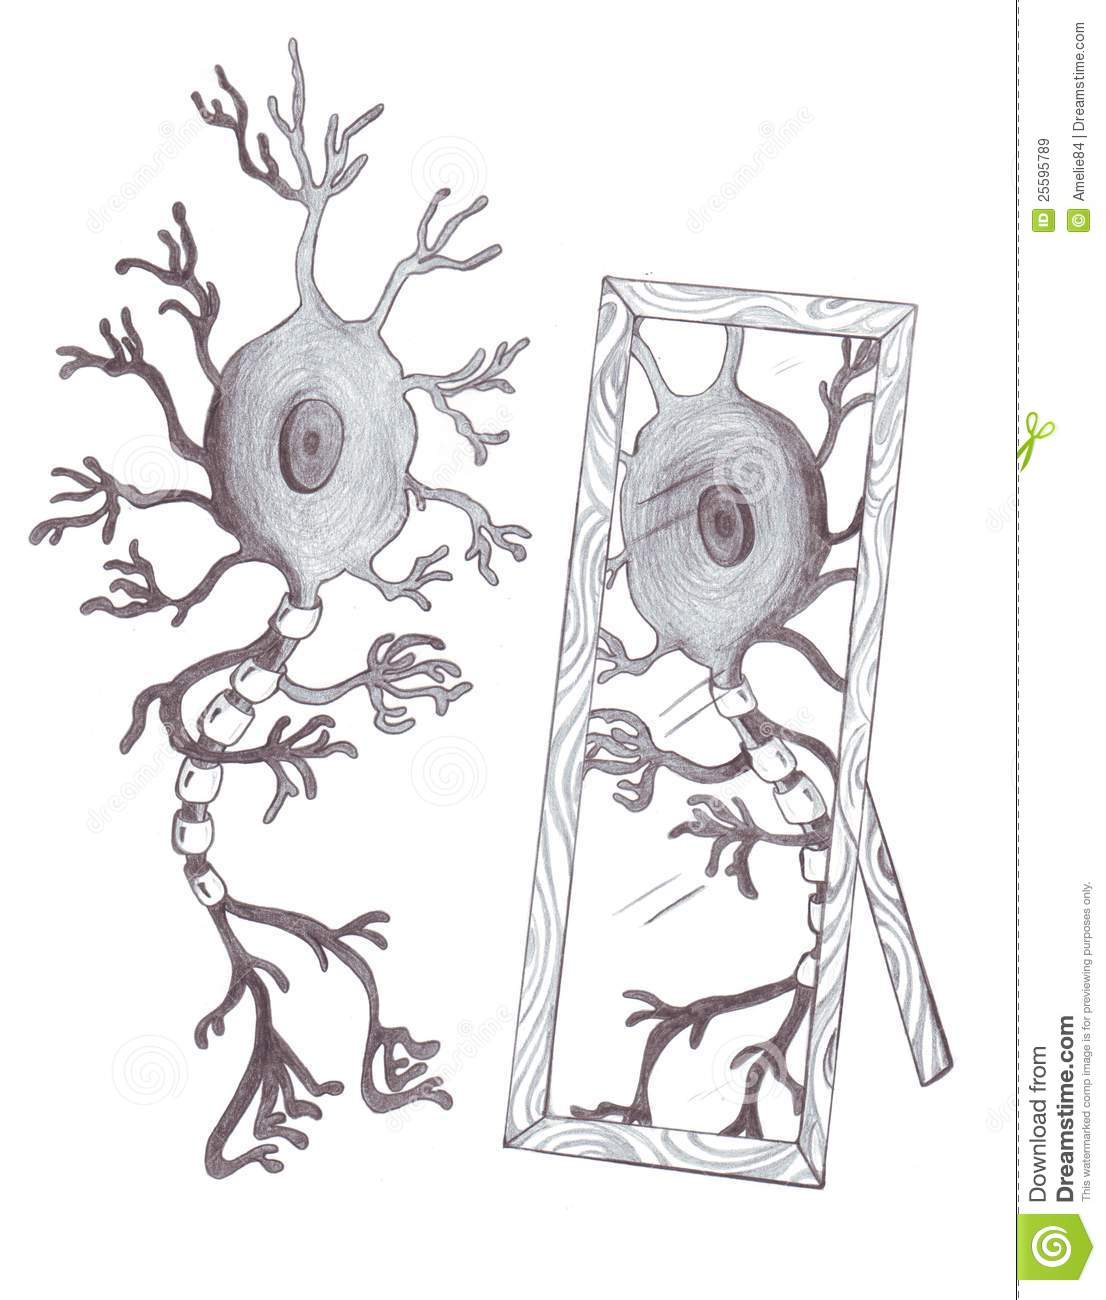 Mirror neuron stock illustration image of monochrome for Mirror neurons psychology definition